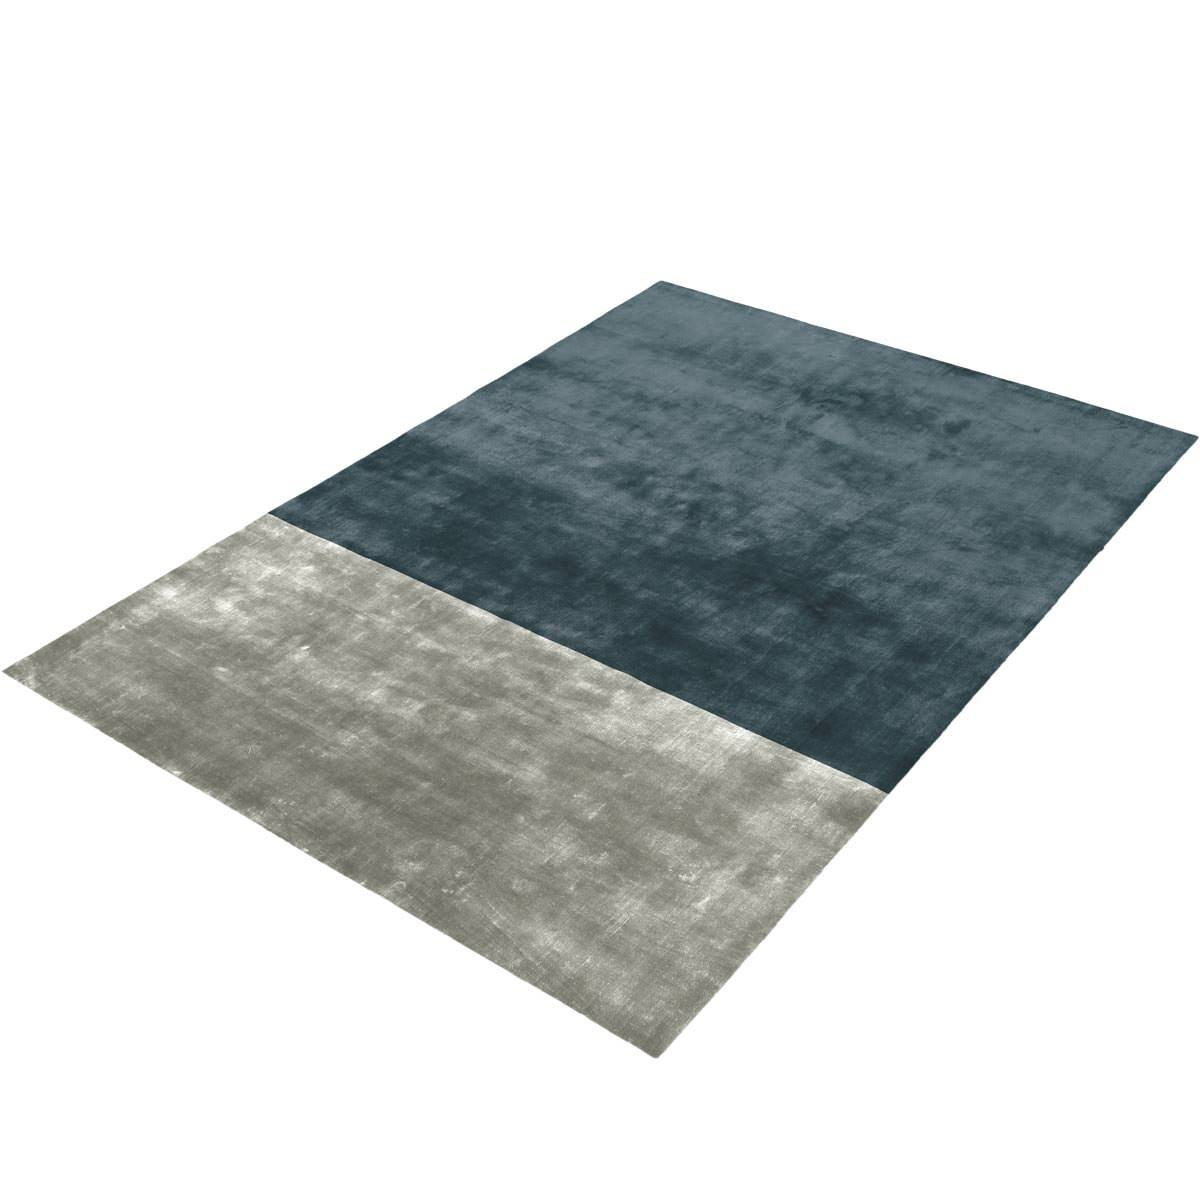 Tuscany Rug 02 Blue/Grey 3